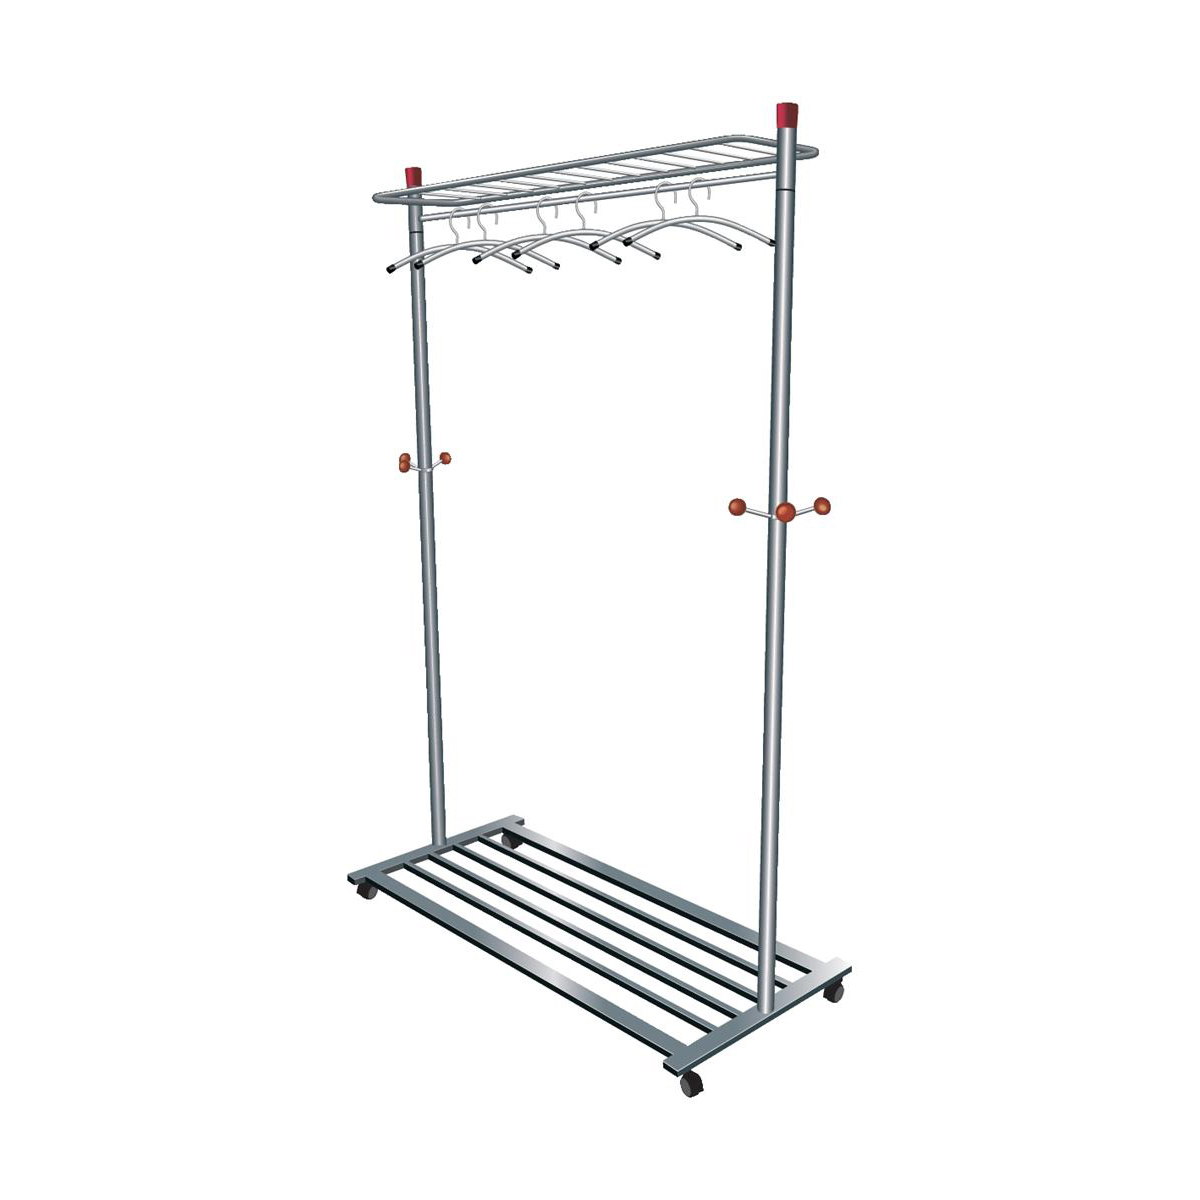 Coat Racks 5 Star Facilities Coat Rack Mobile 4 Wheels 3 Pegs Capacity 40-50 Hangers 1140x550x1800mm Silver